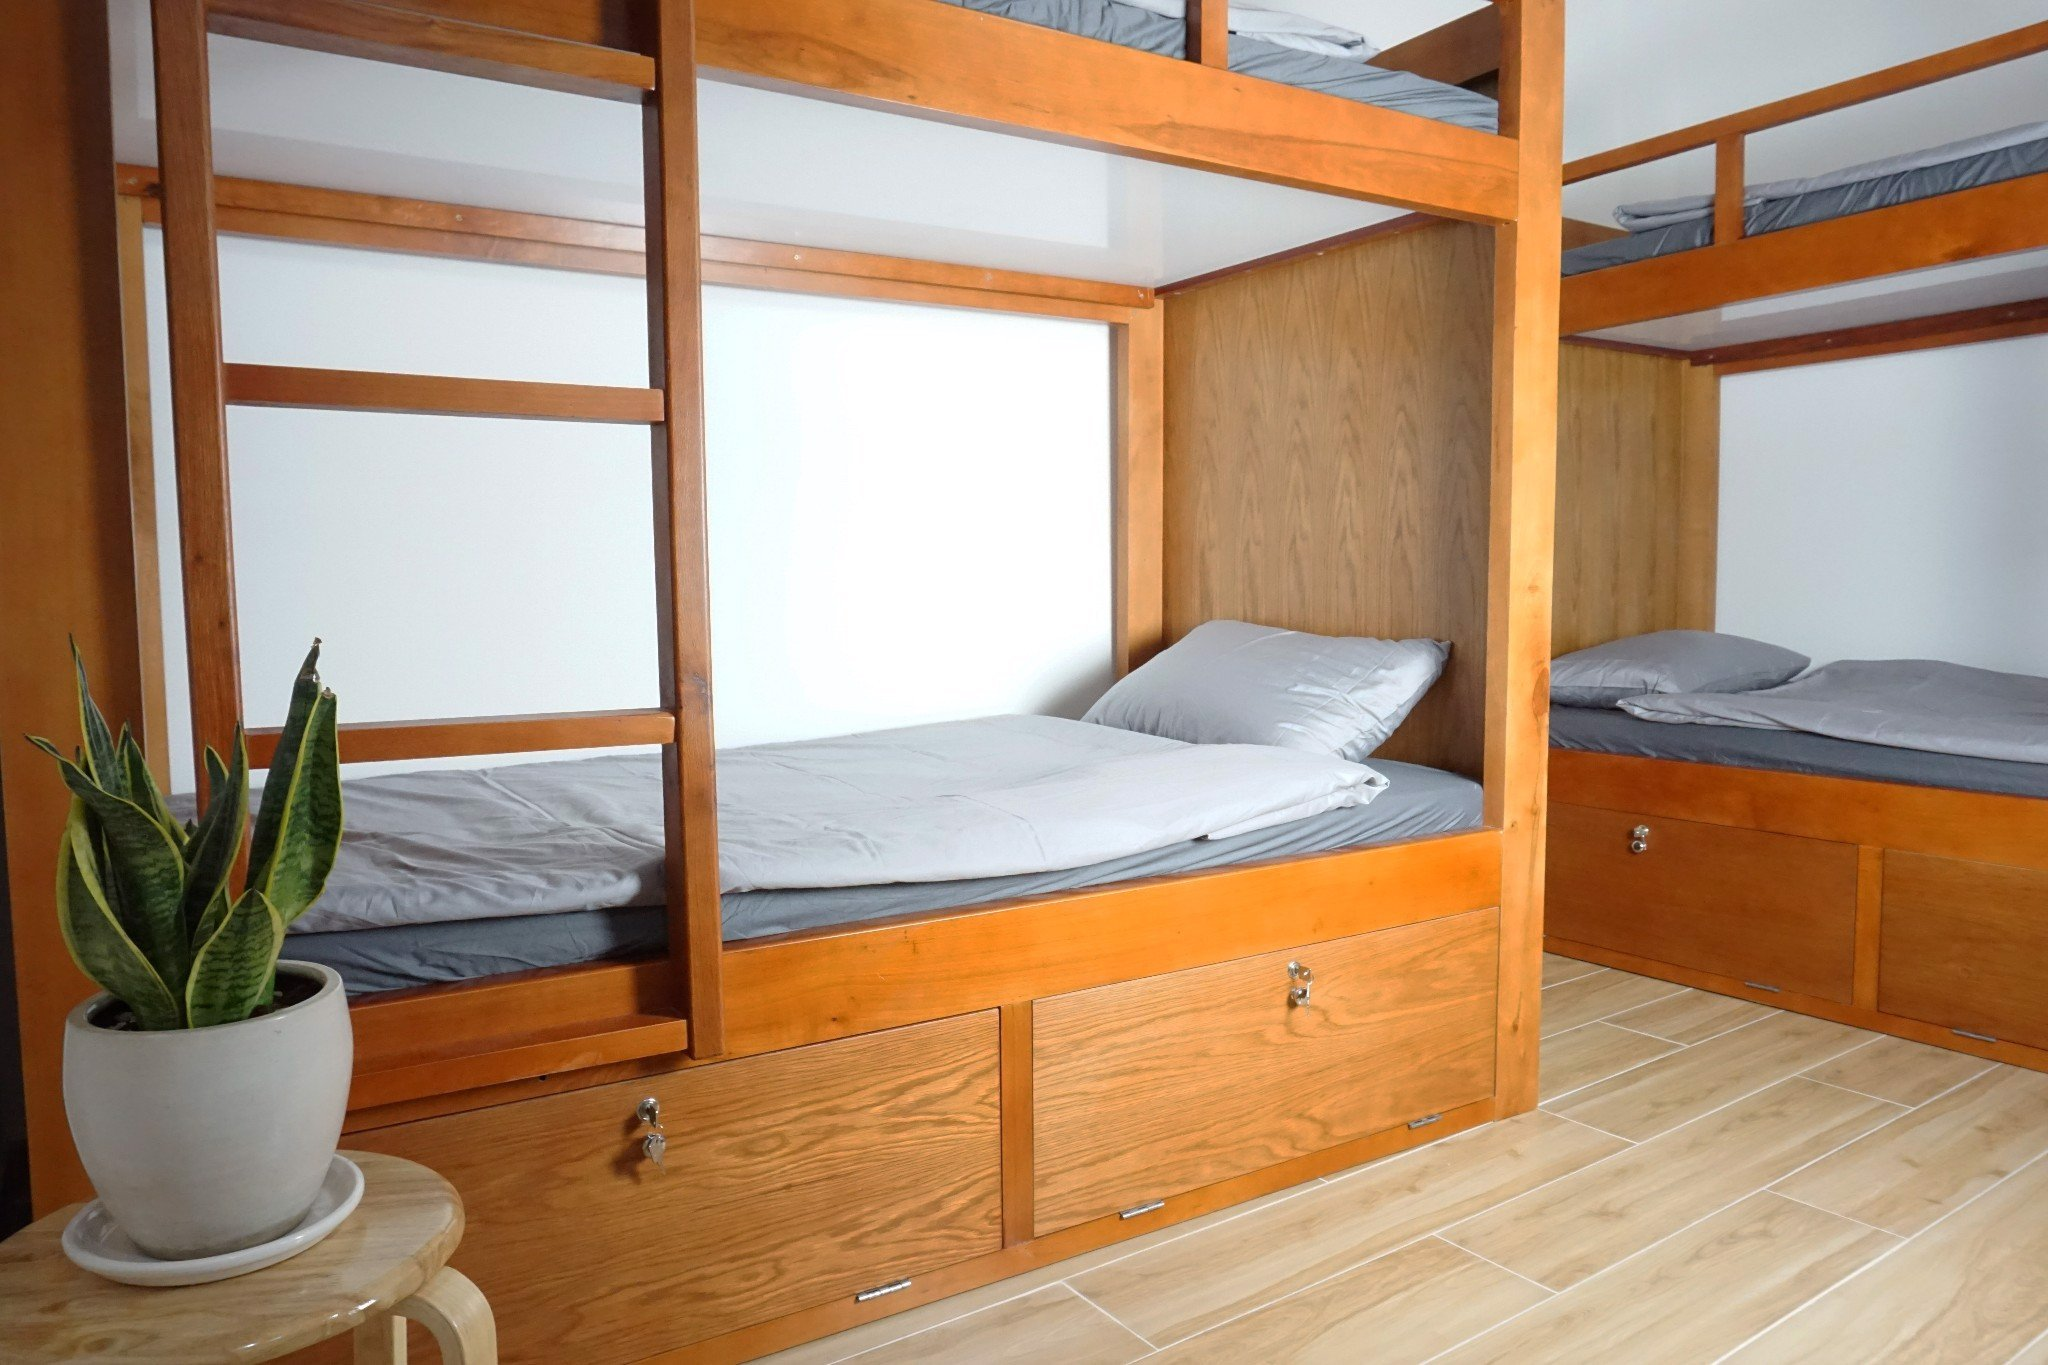 6- Bed Female dorm